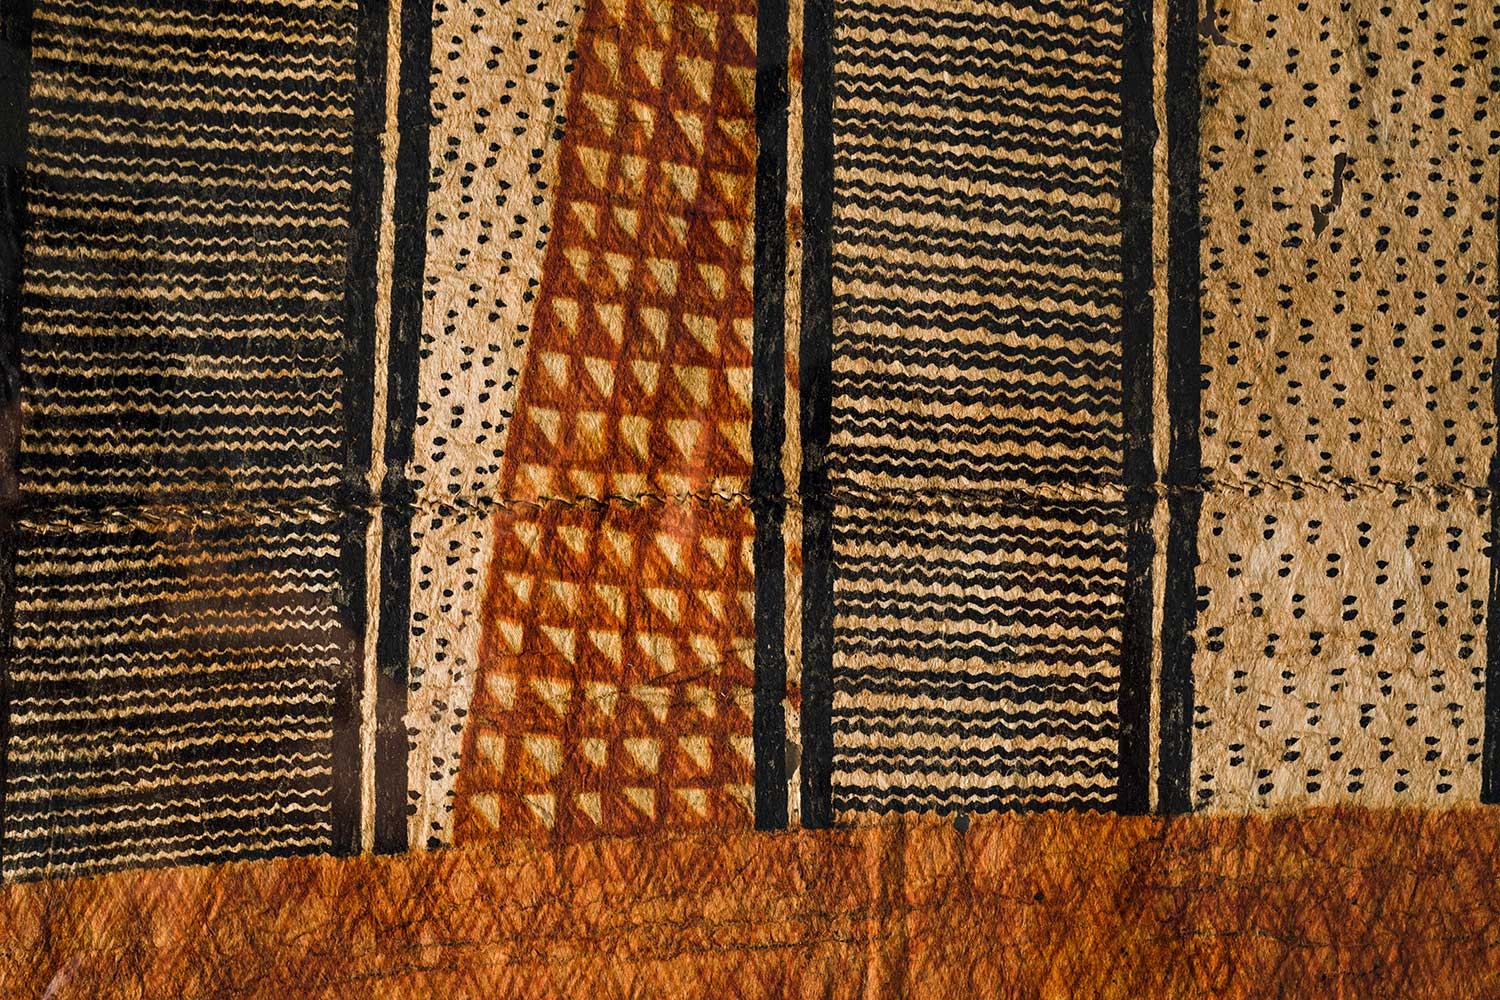 An ancient kapa cloth with black and brown design embedded into it.